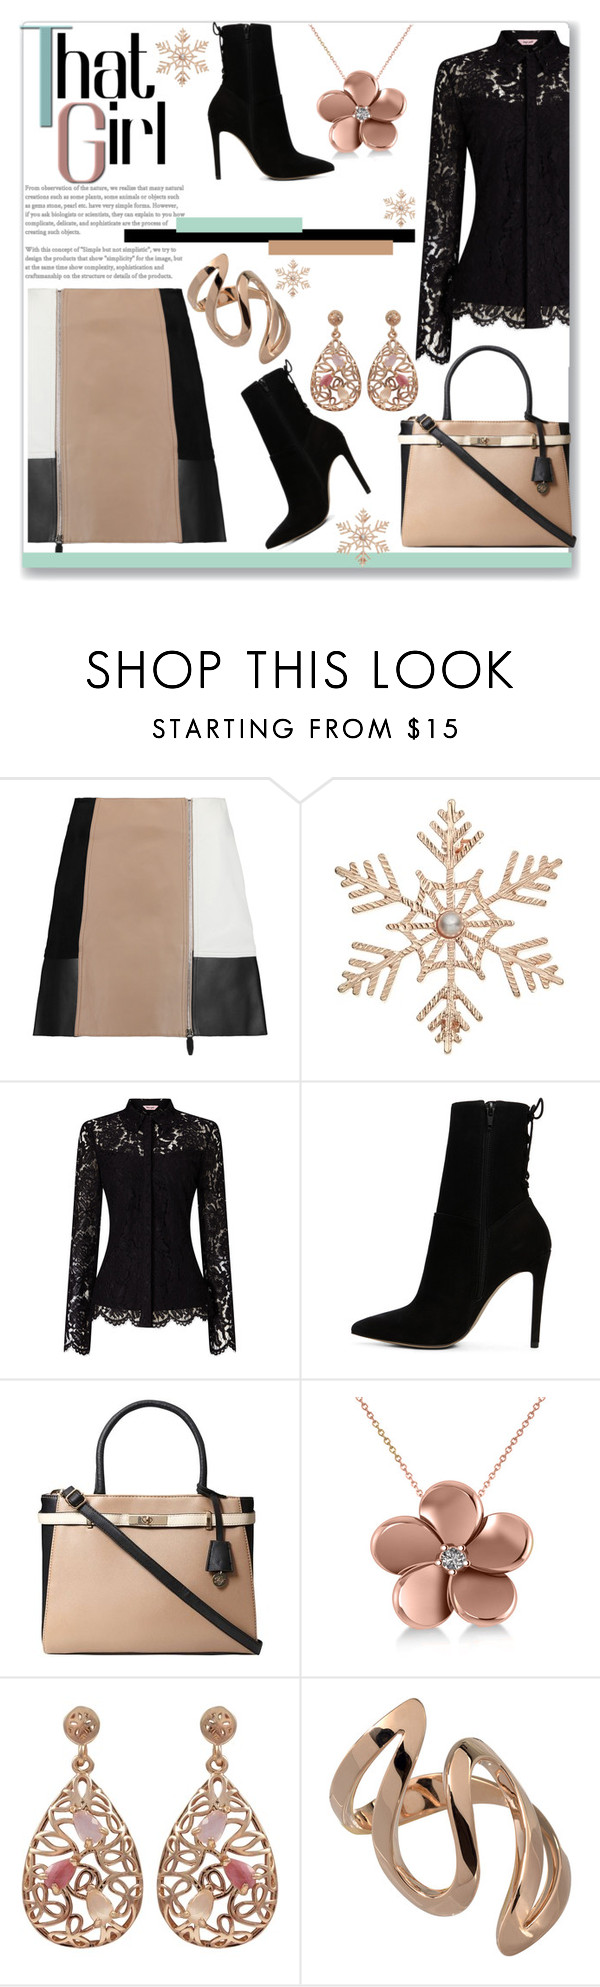 """""""That Girl... #2"""" by helenaymangual ❤ liked on Polyvore featuring Alexander Wang, John Lewis, ALDO, Dorothy Perkins, Allurez and Luxiro"""